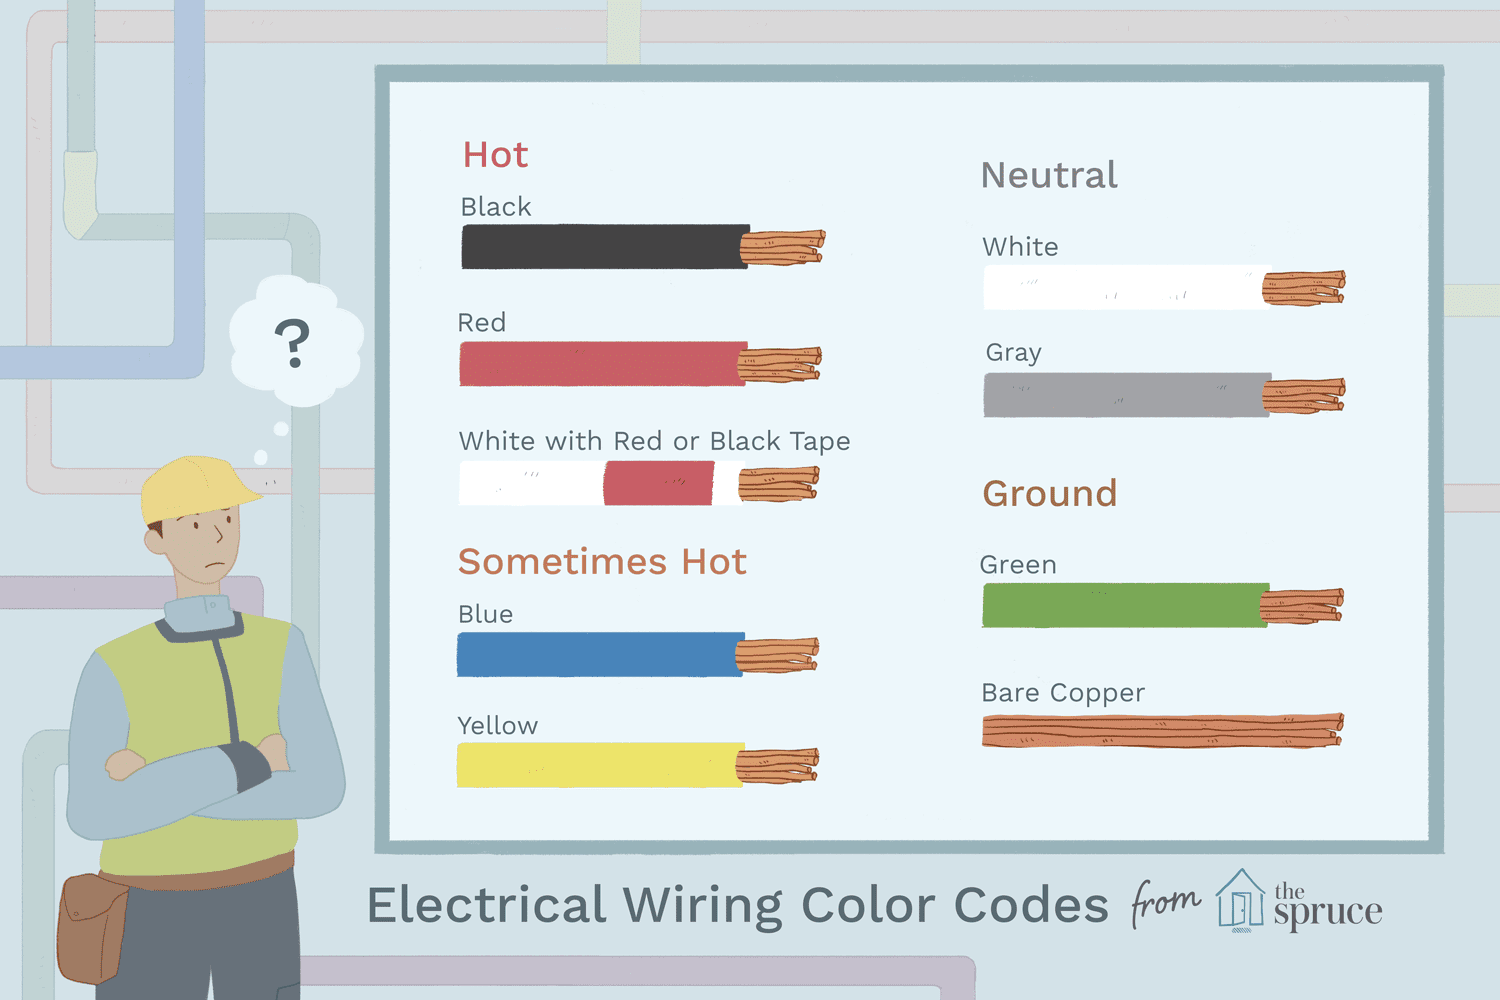 Electrical Wiring Color Coding System border=